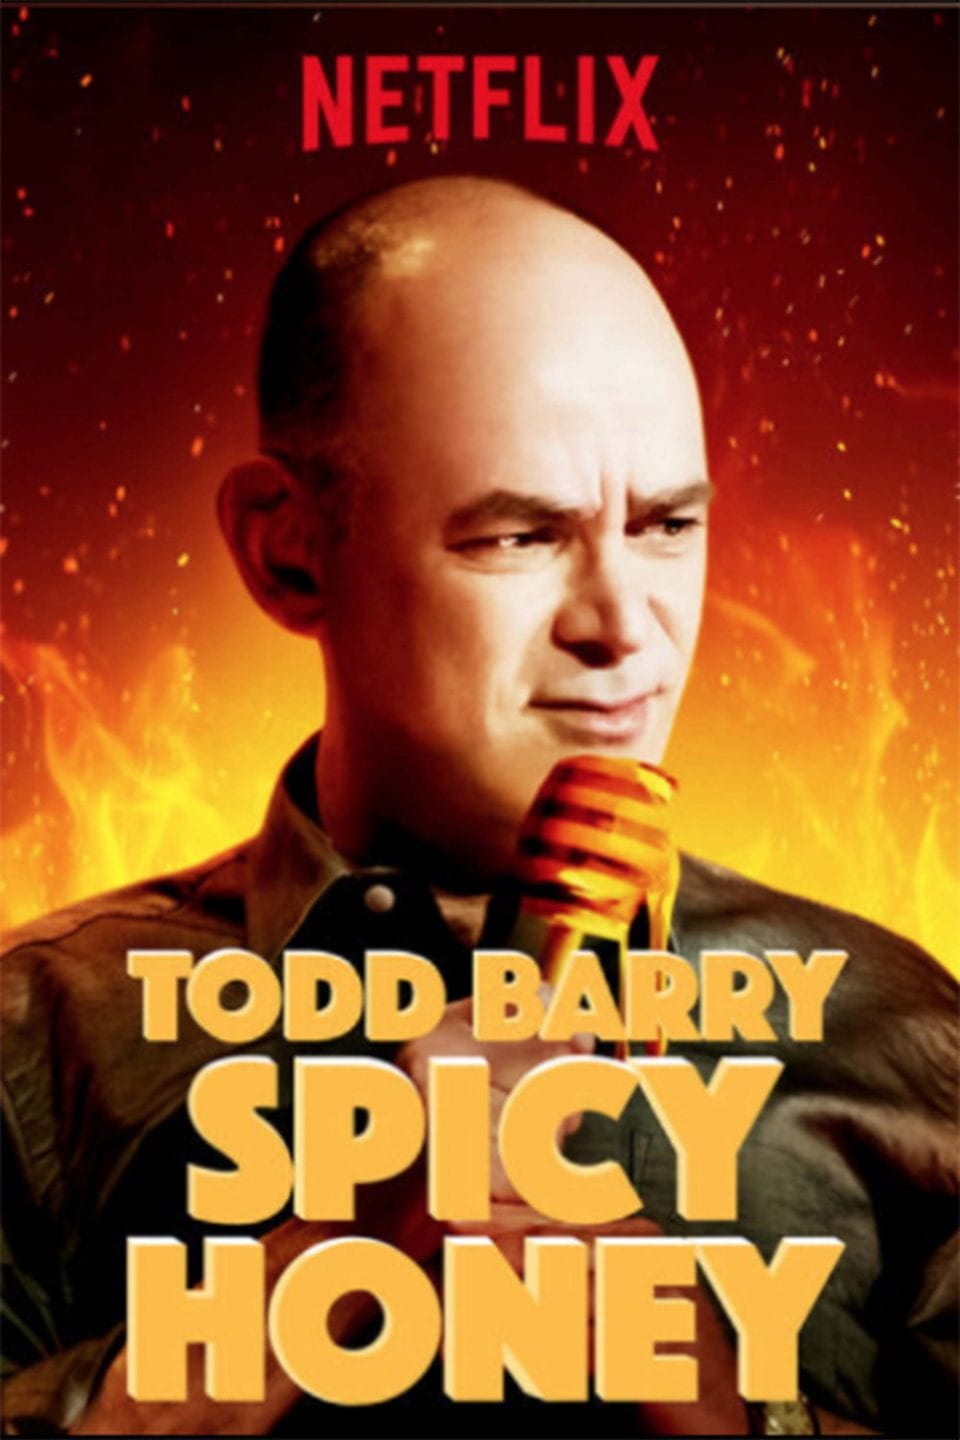 Todd Barry Spicey Honey